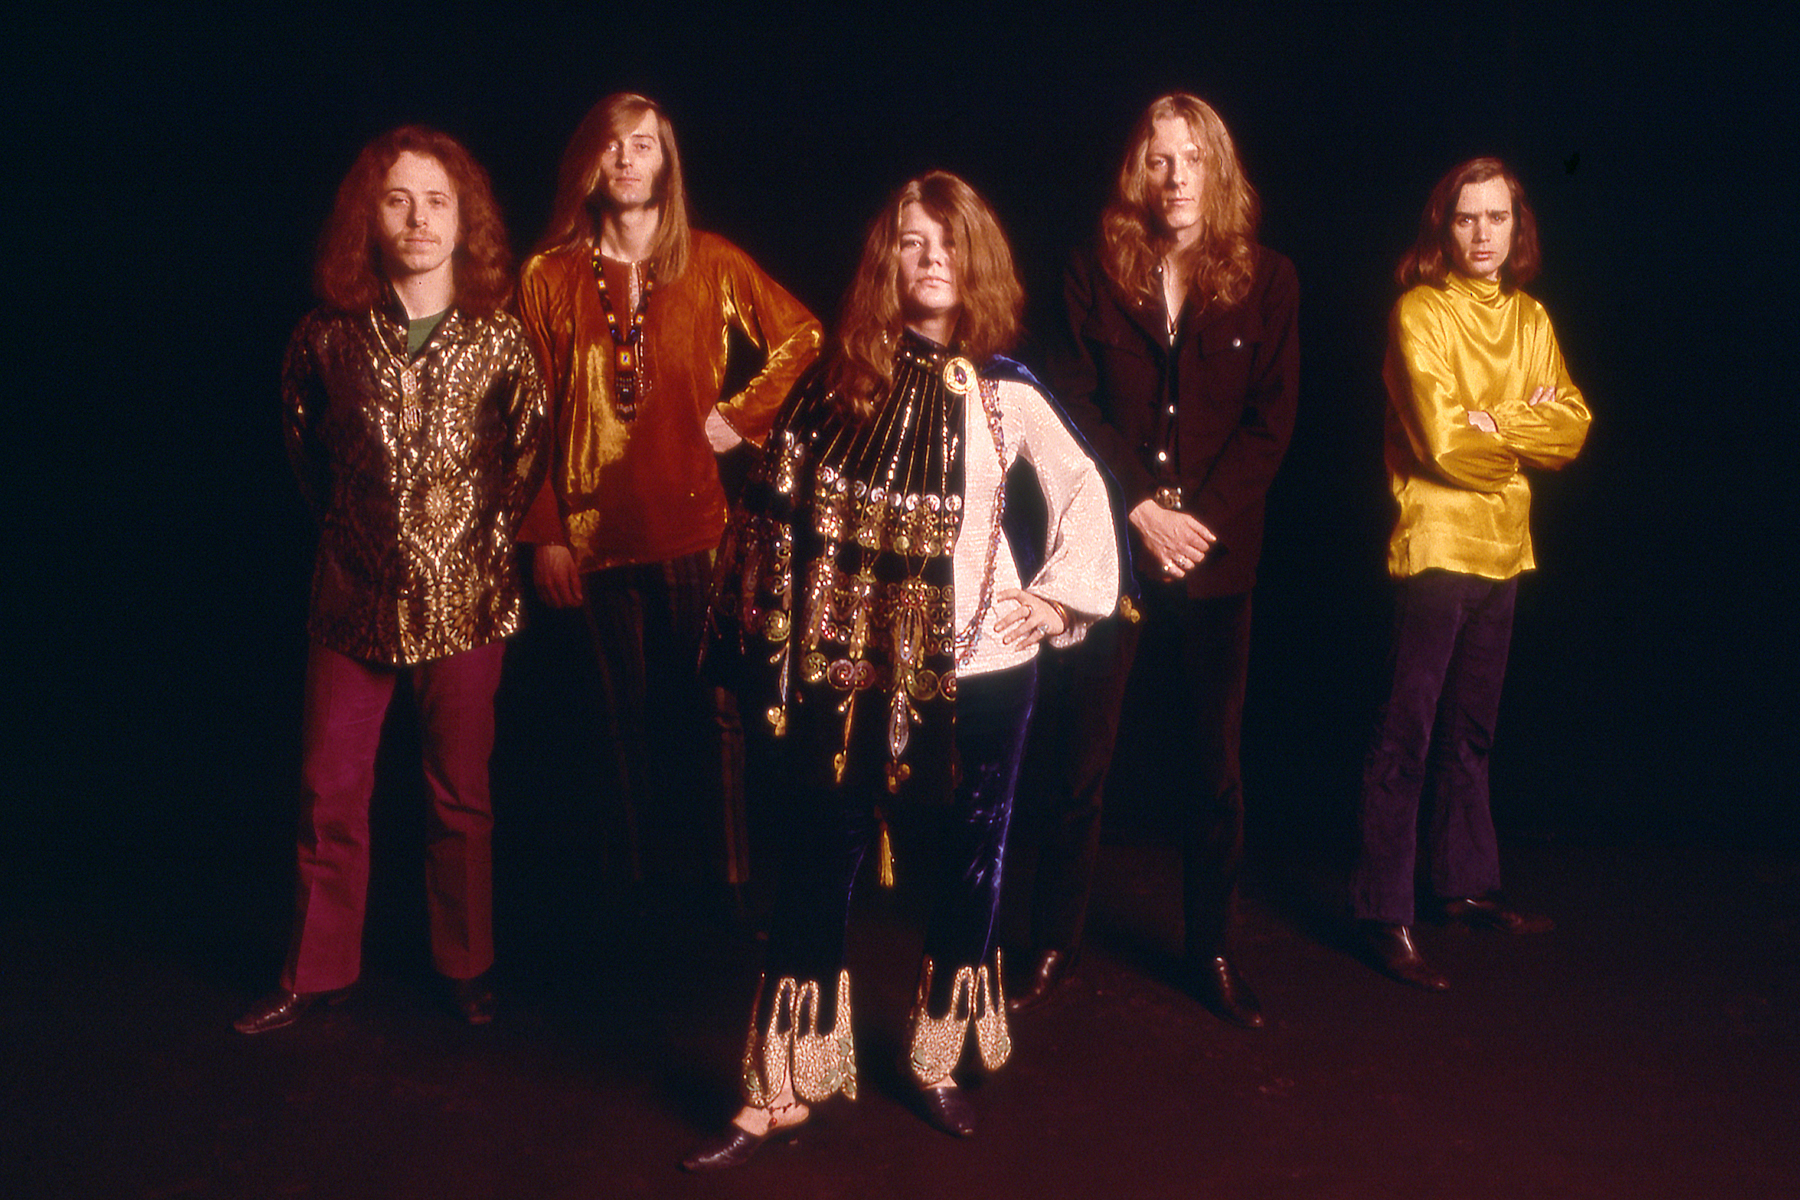 Review: Big Brother and the Holding Co.'s 'Sex, Dope and Cheap Thrills' Offers a Vibrant Image of Janis Joplin in Her Prime